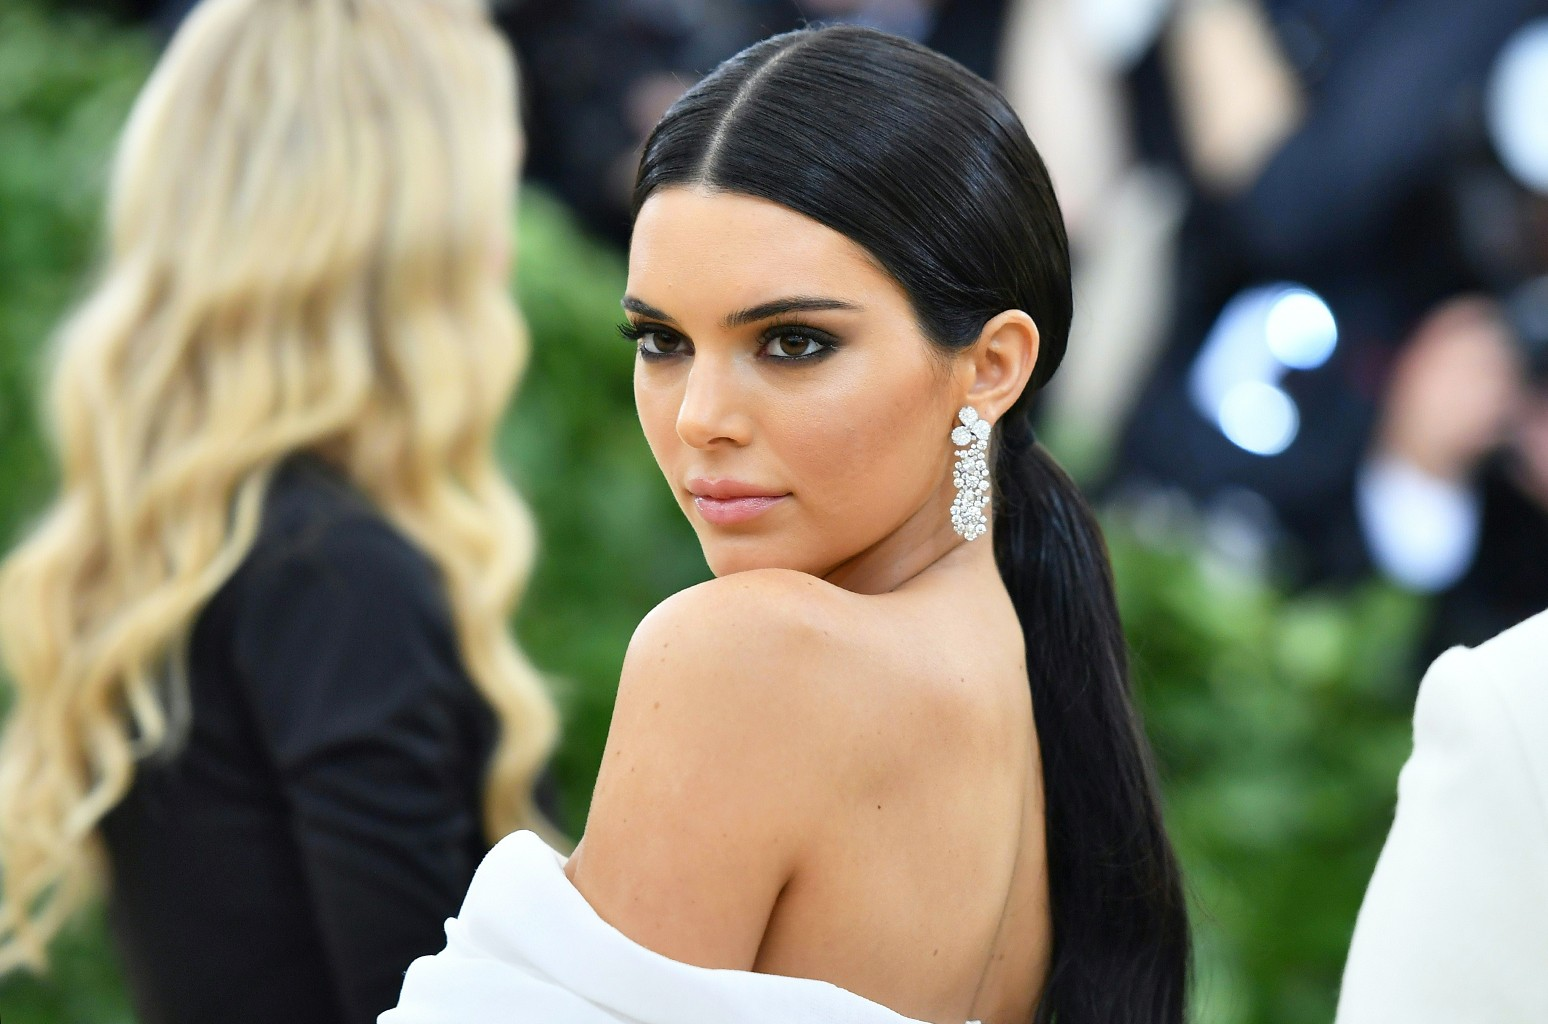 Kendall Jenner arrives for the 2018 Met Gala on May 7, 2018 at the Metropolitan Museum of Art in New York City. (ANGELA WEISS/AFP/Getty Images)